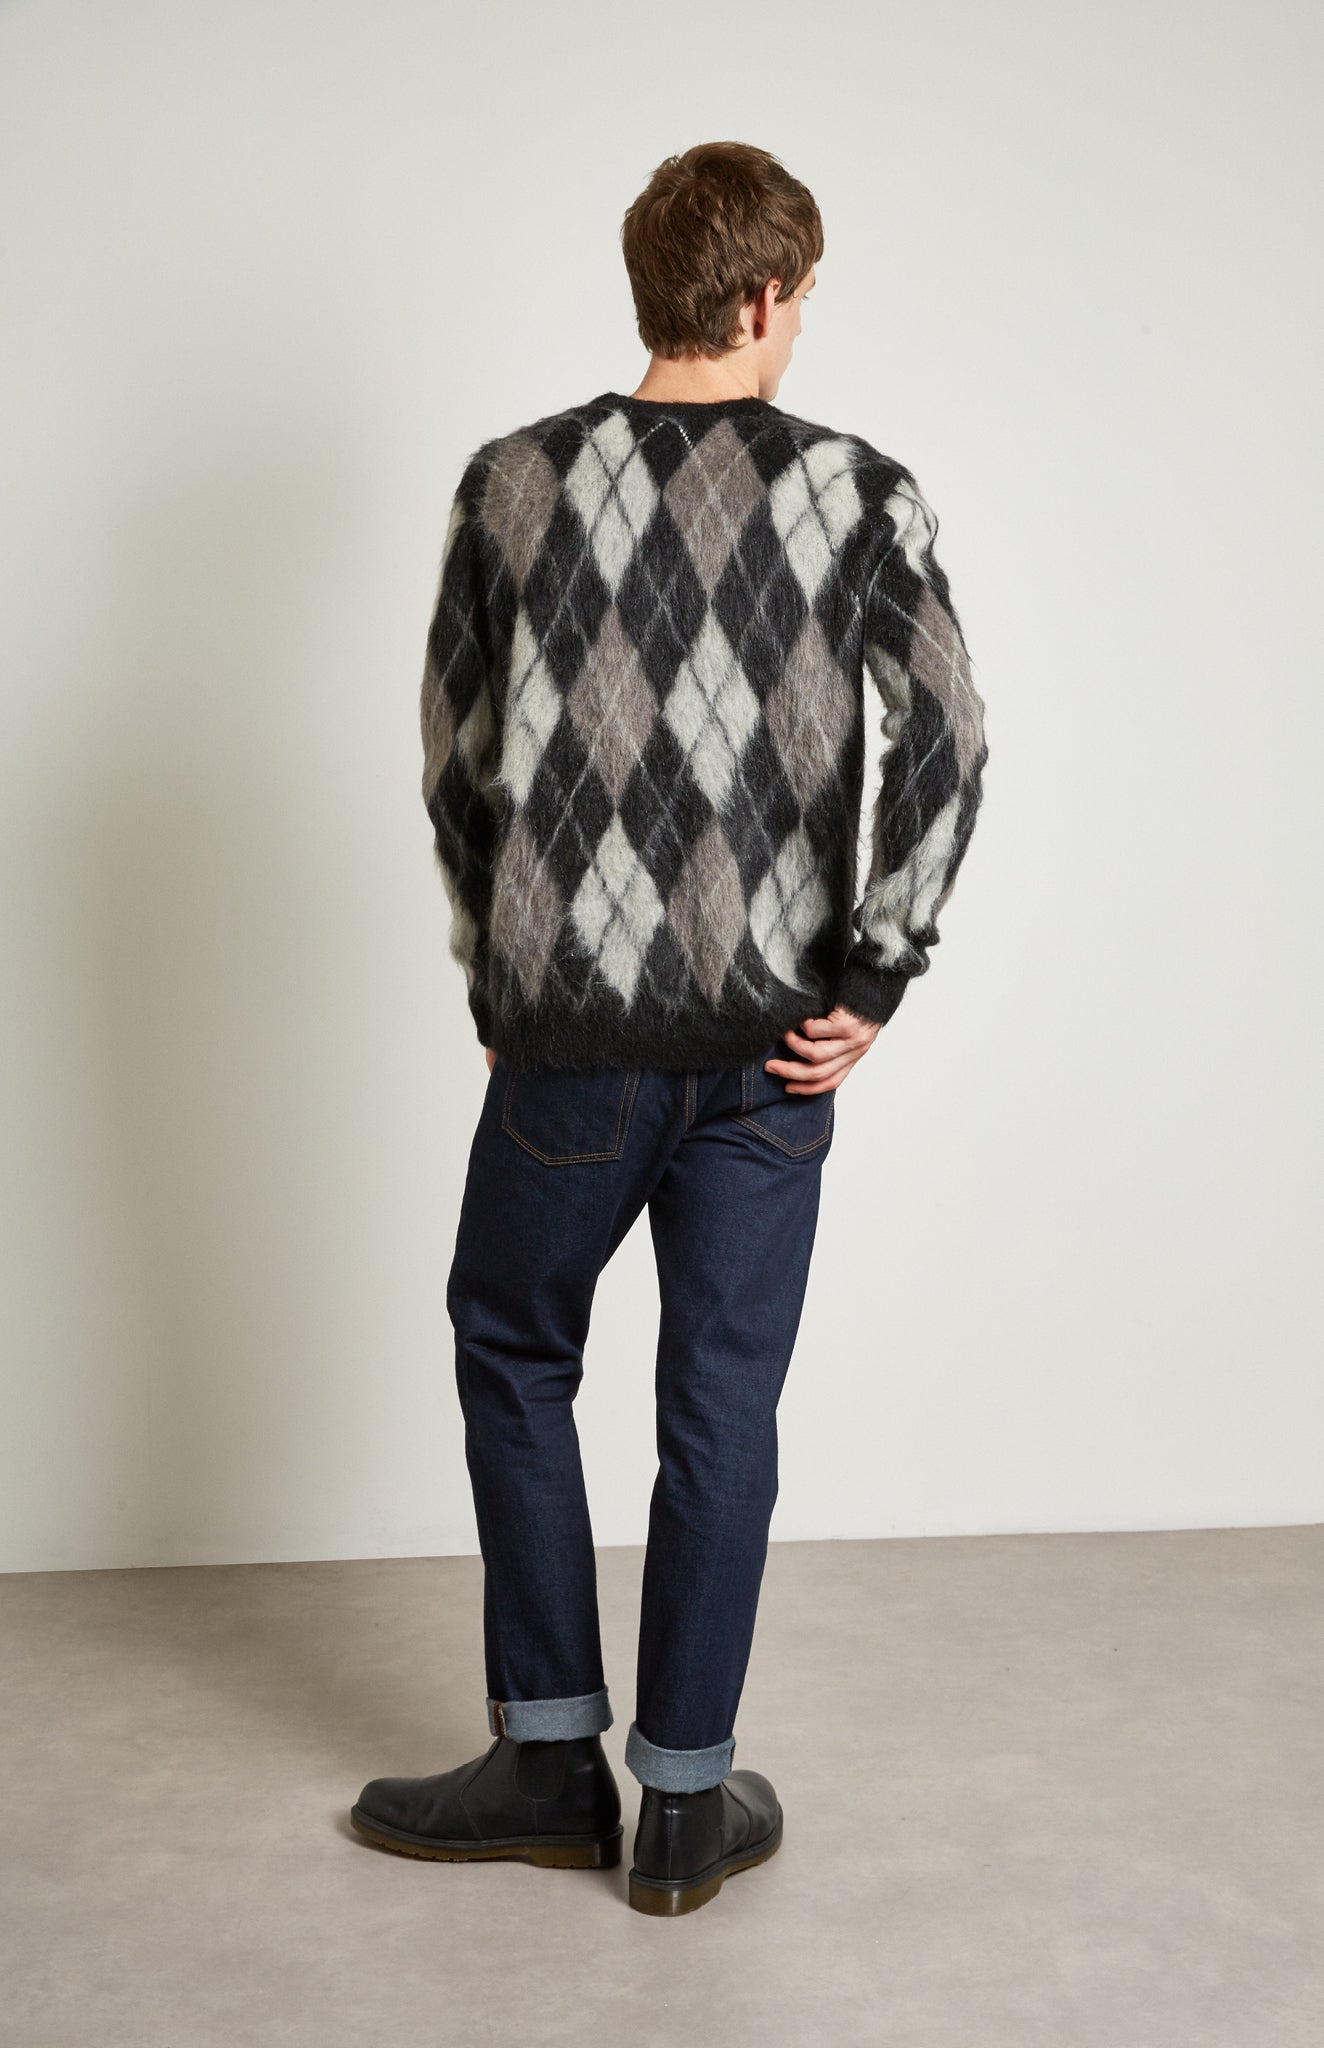 Pringle Reissued Unisex Monochrome Argyle Jumper on male model back shot